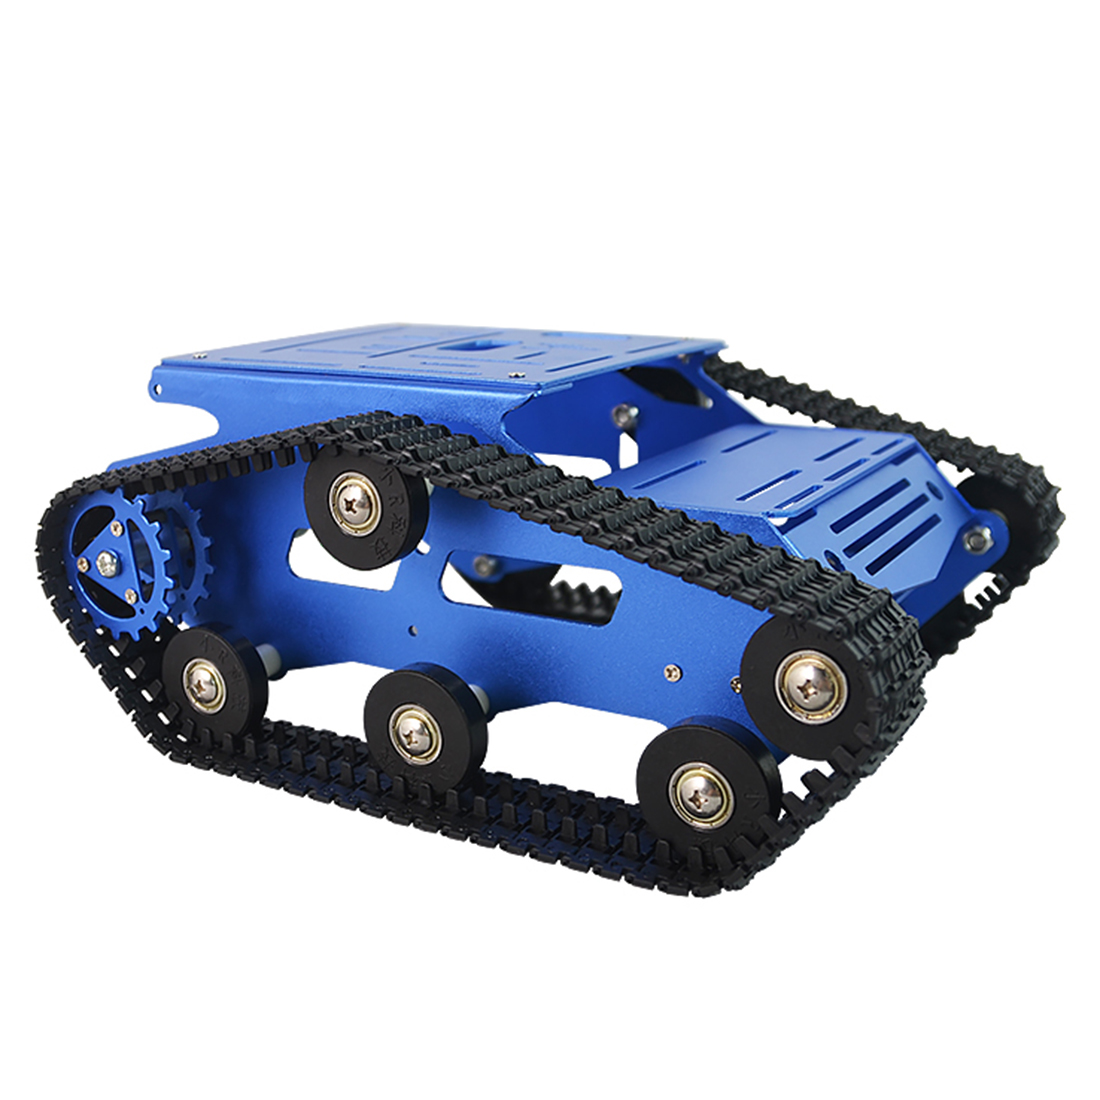 DIY Smart Robot Tank Crawler Chassis Car Frame Kit Programmable Toys For Kids Adults Christmas Gifts 2019 - Blue Red Black